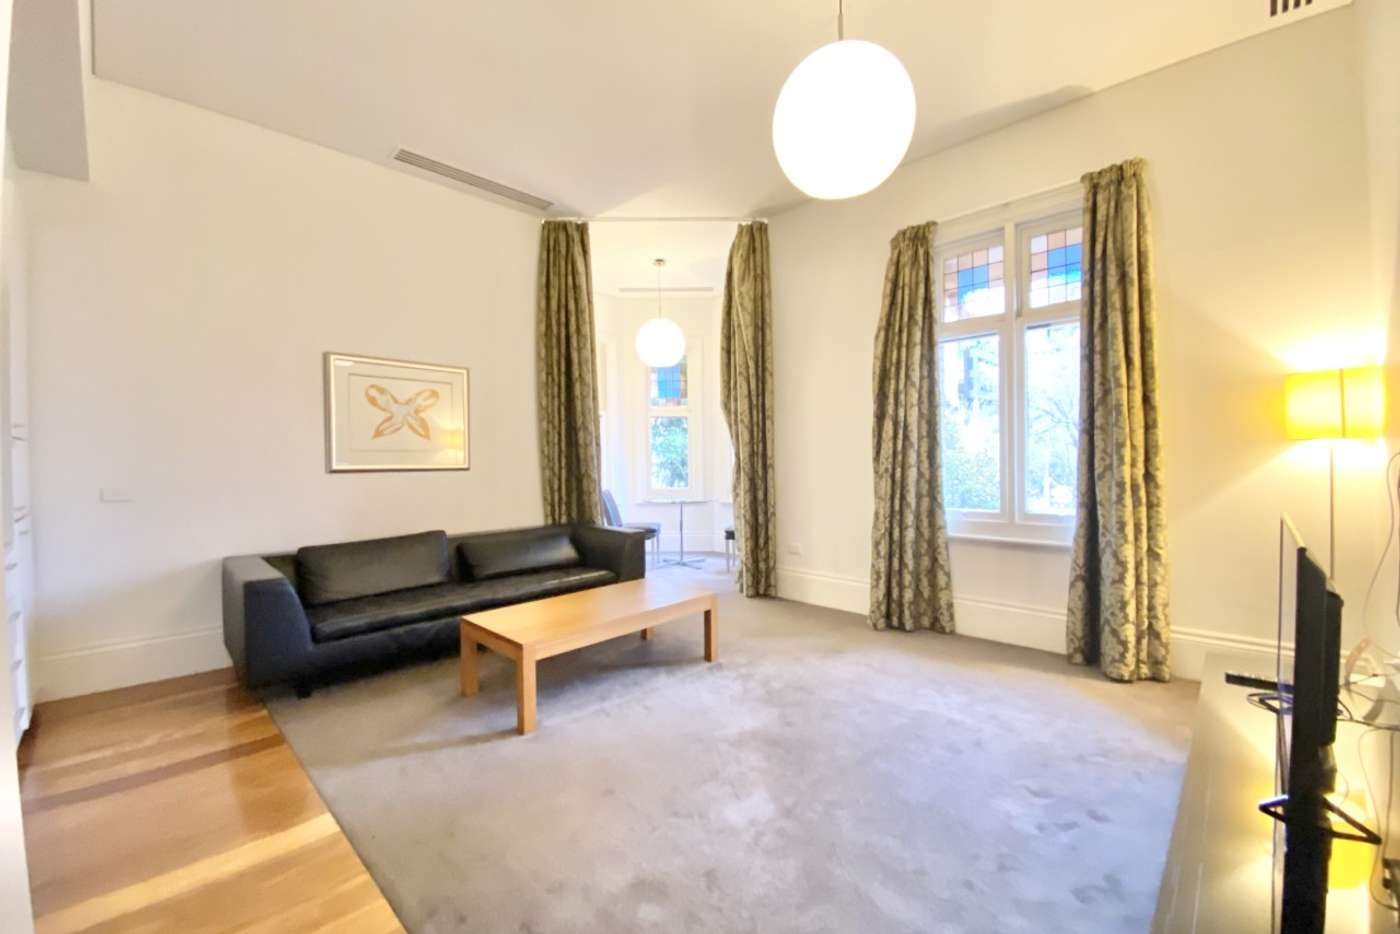 Main view of Homely apartment listing, 201/572 St Kilda Road, Melbourne VIC 3004